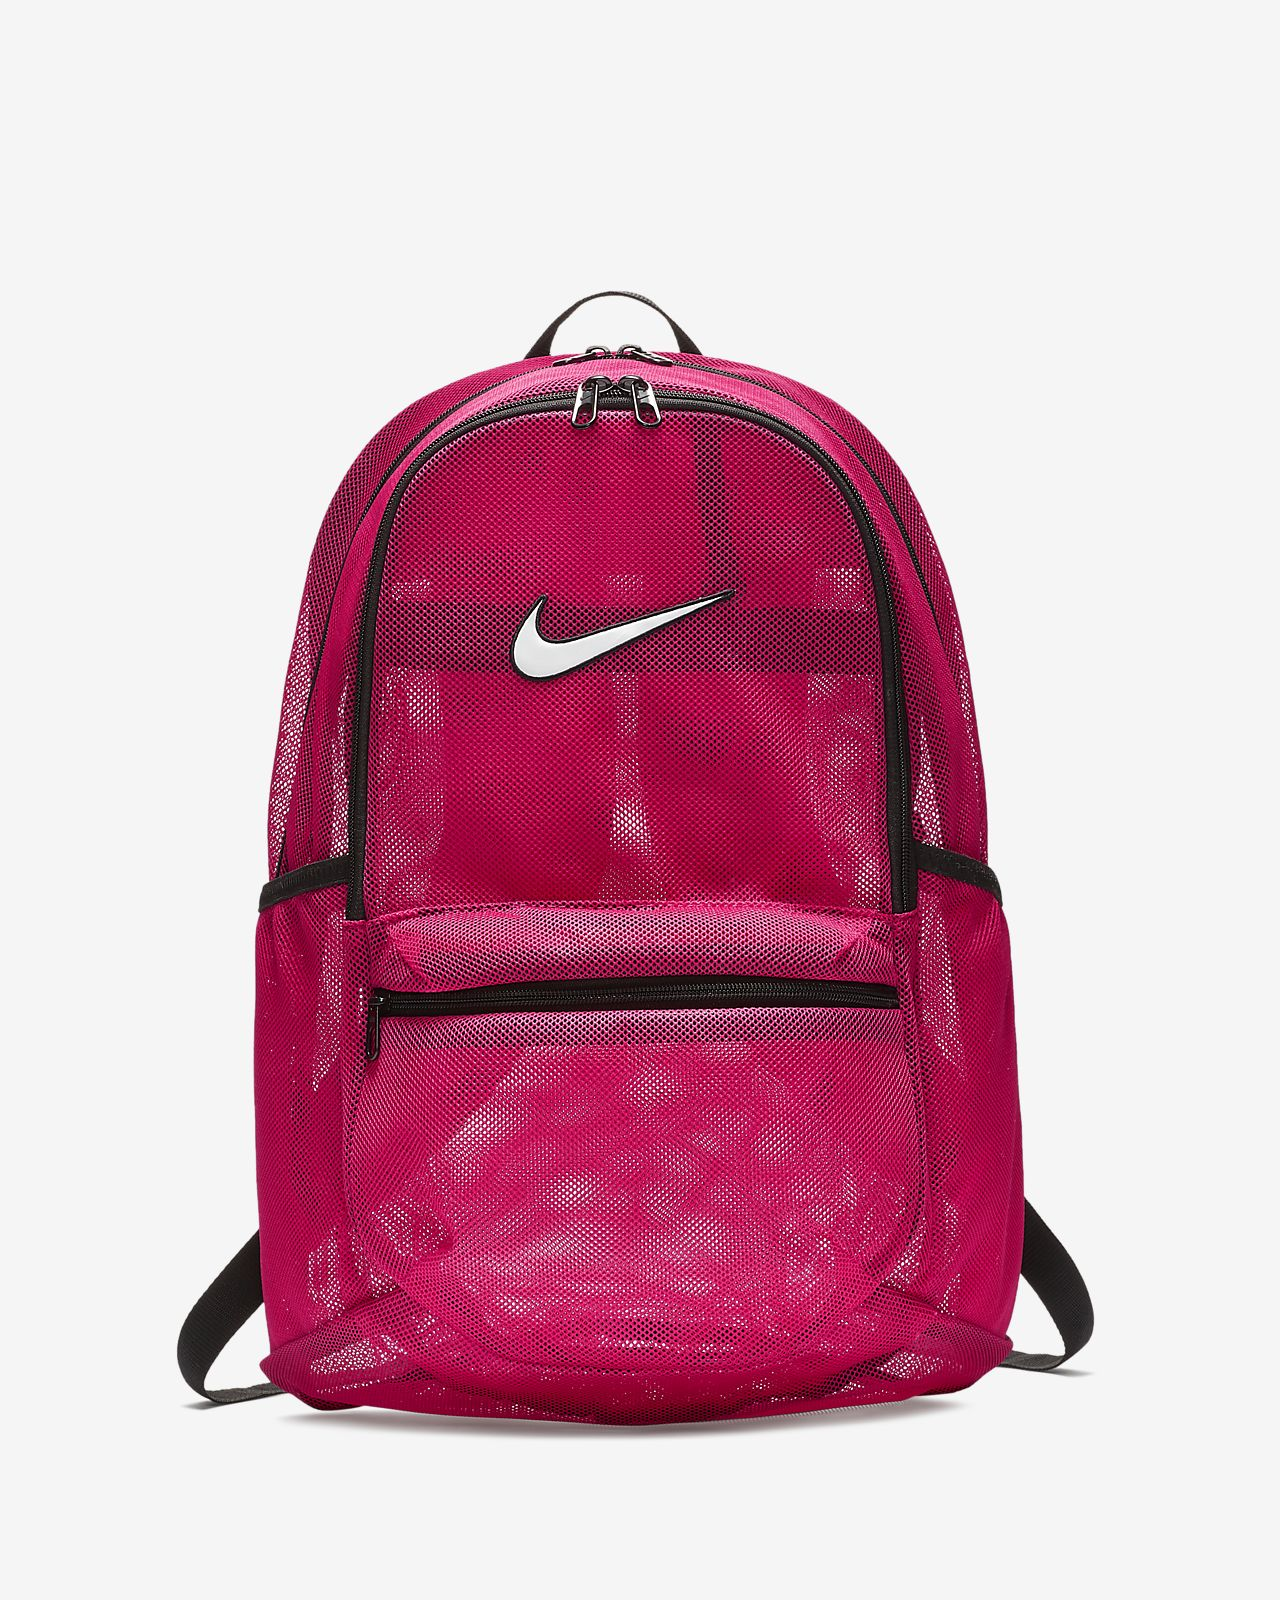 d773a1bc6708 Nike Brasilia Mesh Training Backpack. Nike.com AU